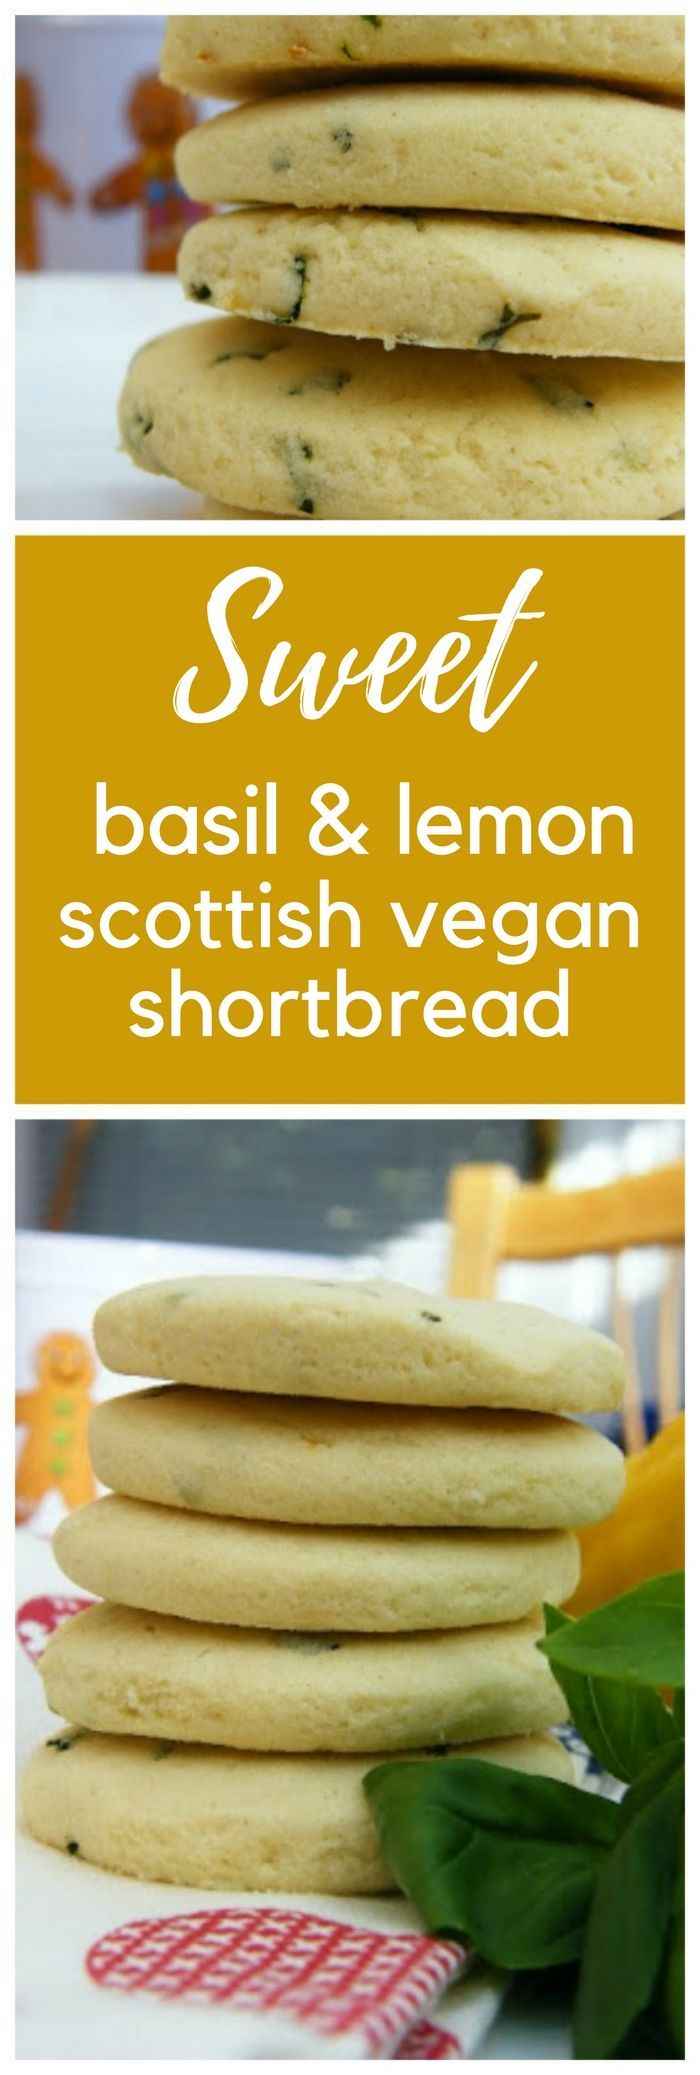 This Scottish shortbread is butter and light. Better than any cookie you will try today. They are quick and easy to whip up and are perfect for vegan or dairy-free diets. Although everyone will love these.